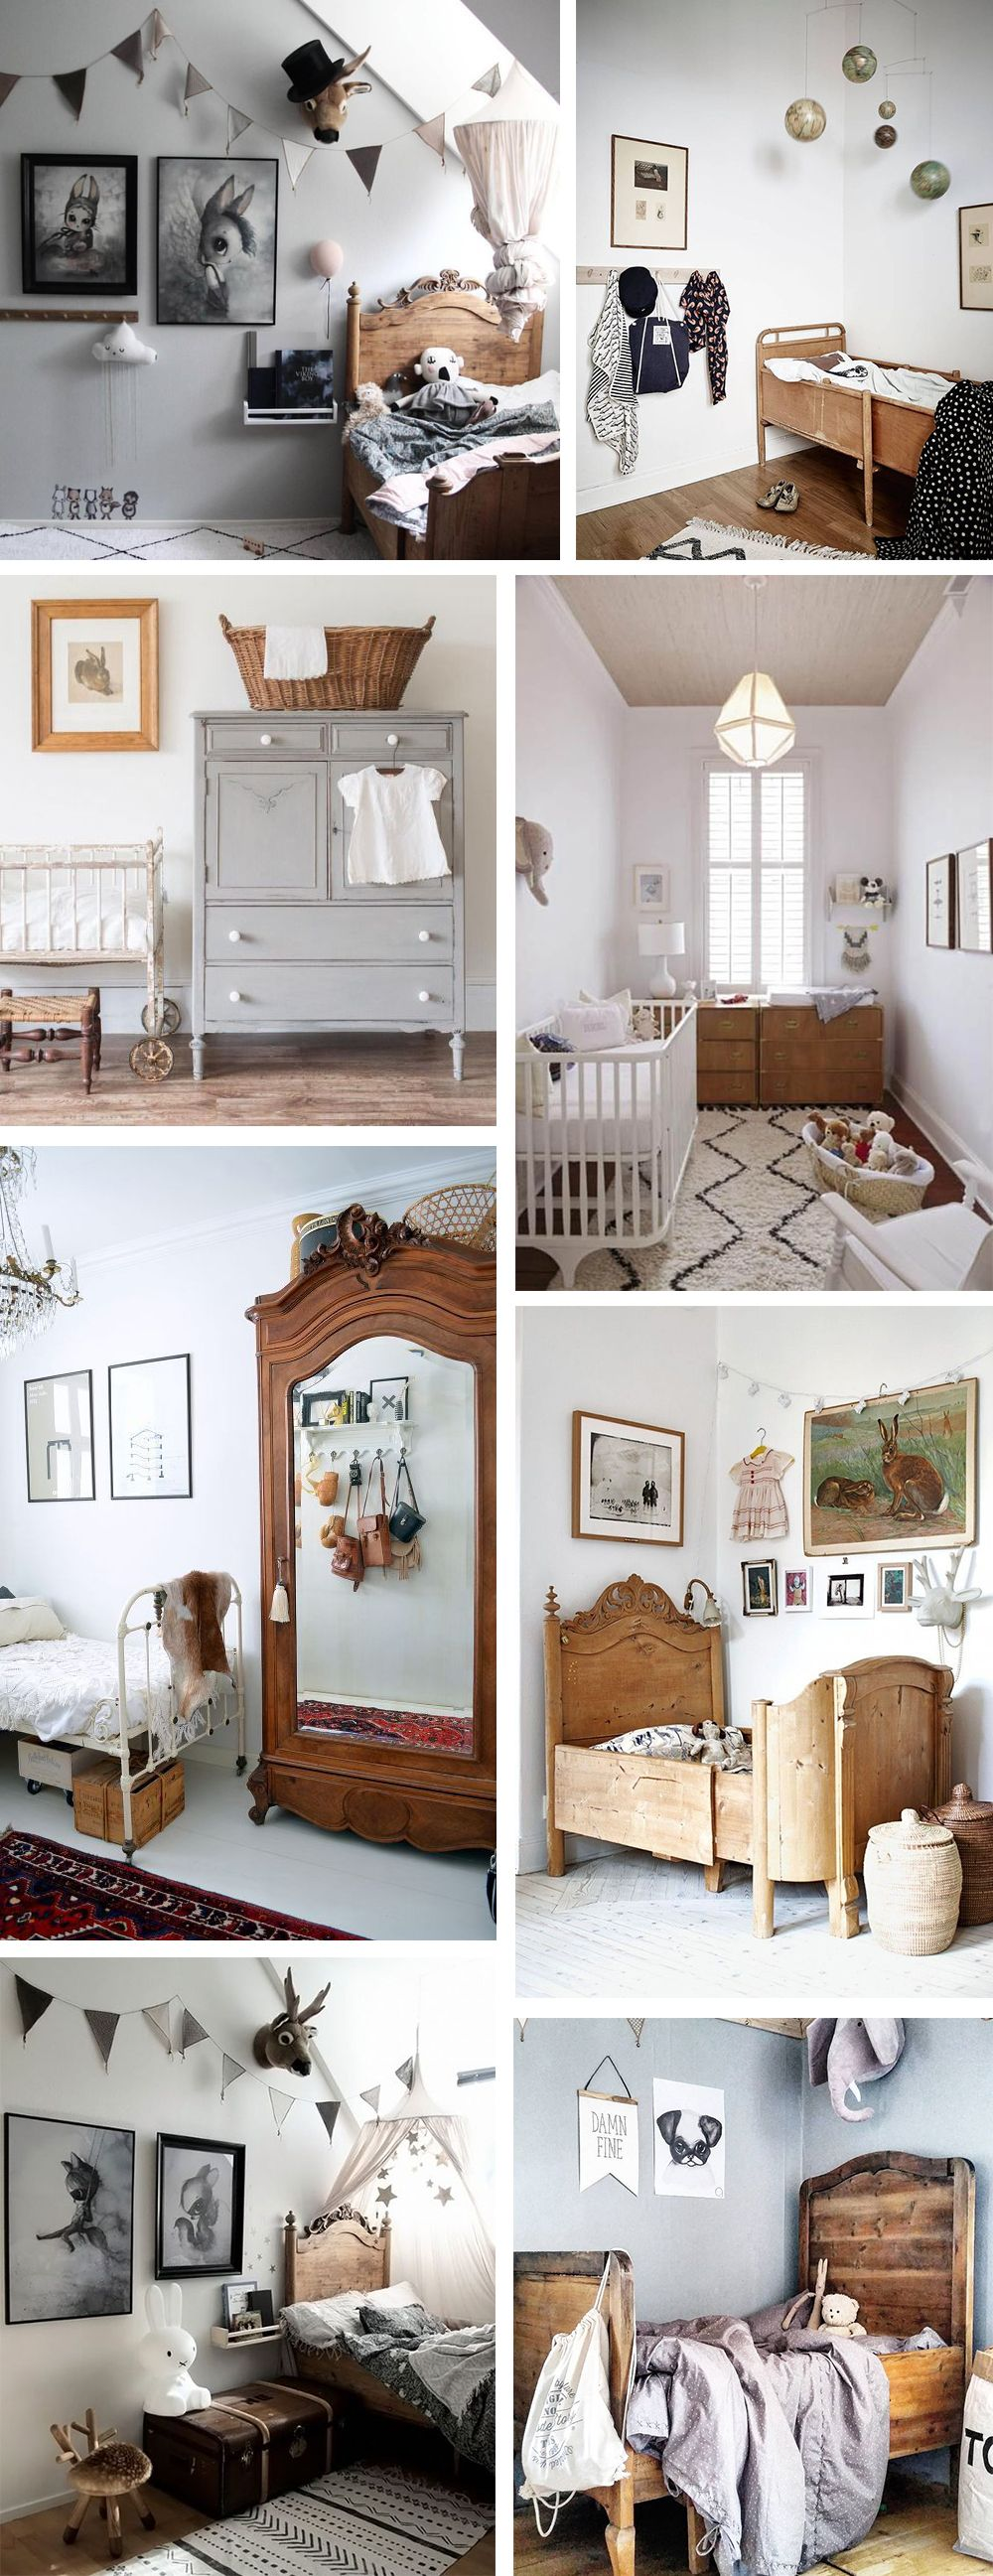 The ethical made vintage kids room images